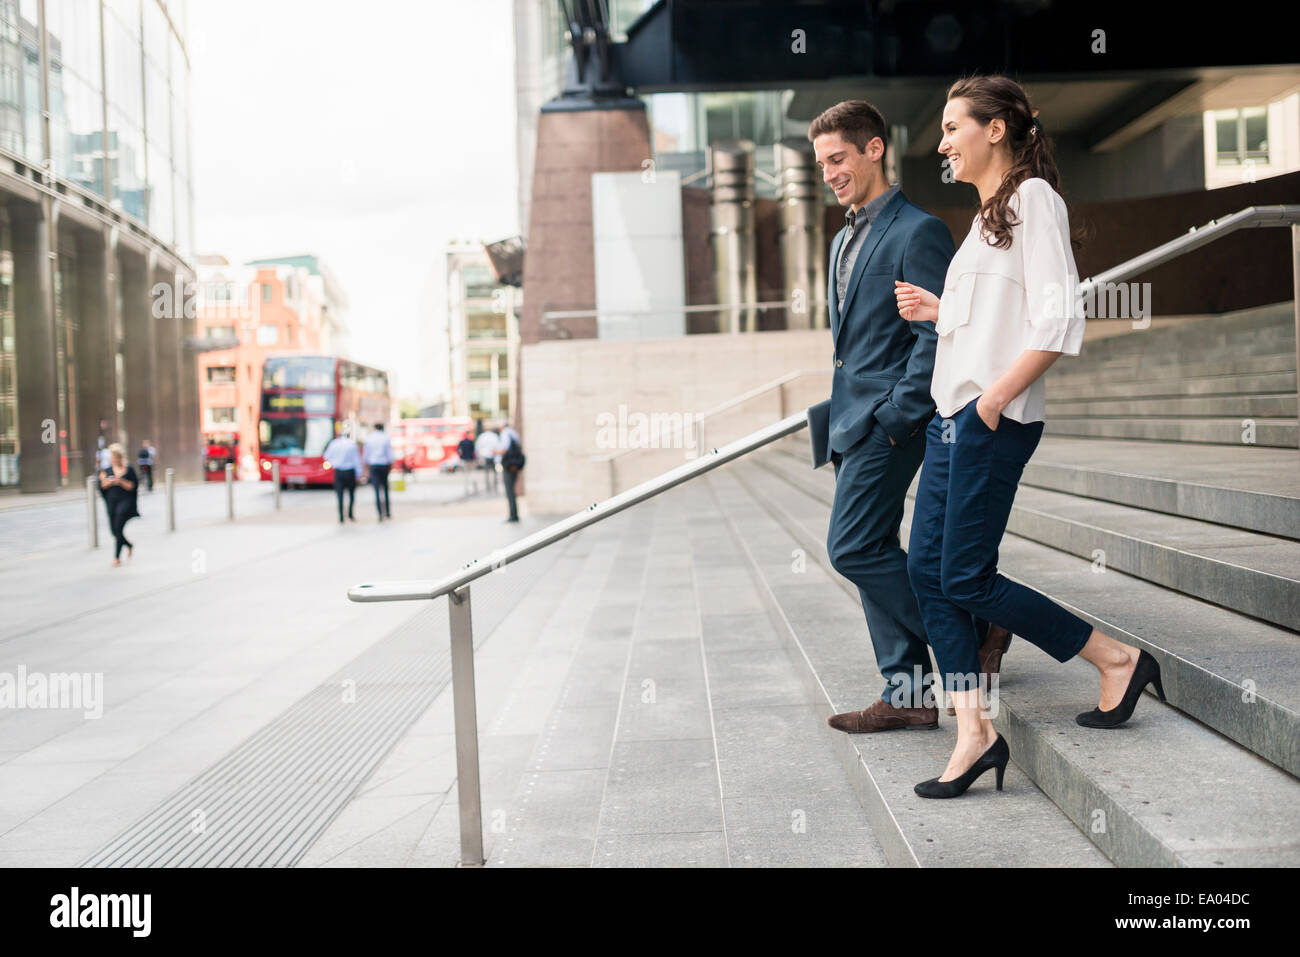 Young businessman and woman chatting tout en descendant les escaliers, London, UK Photo Stock